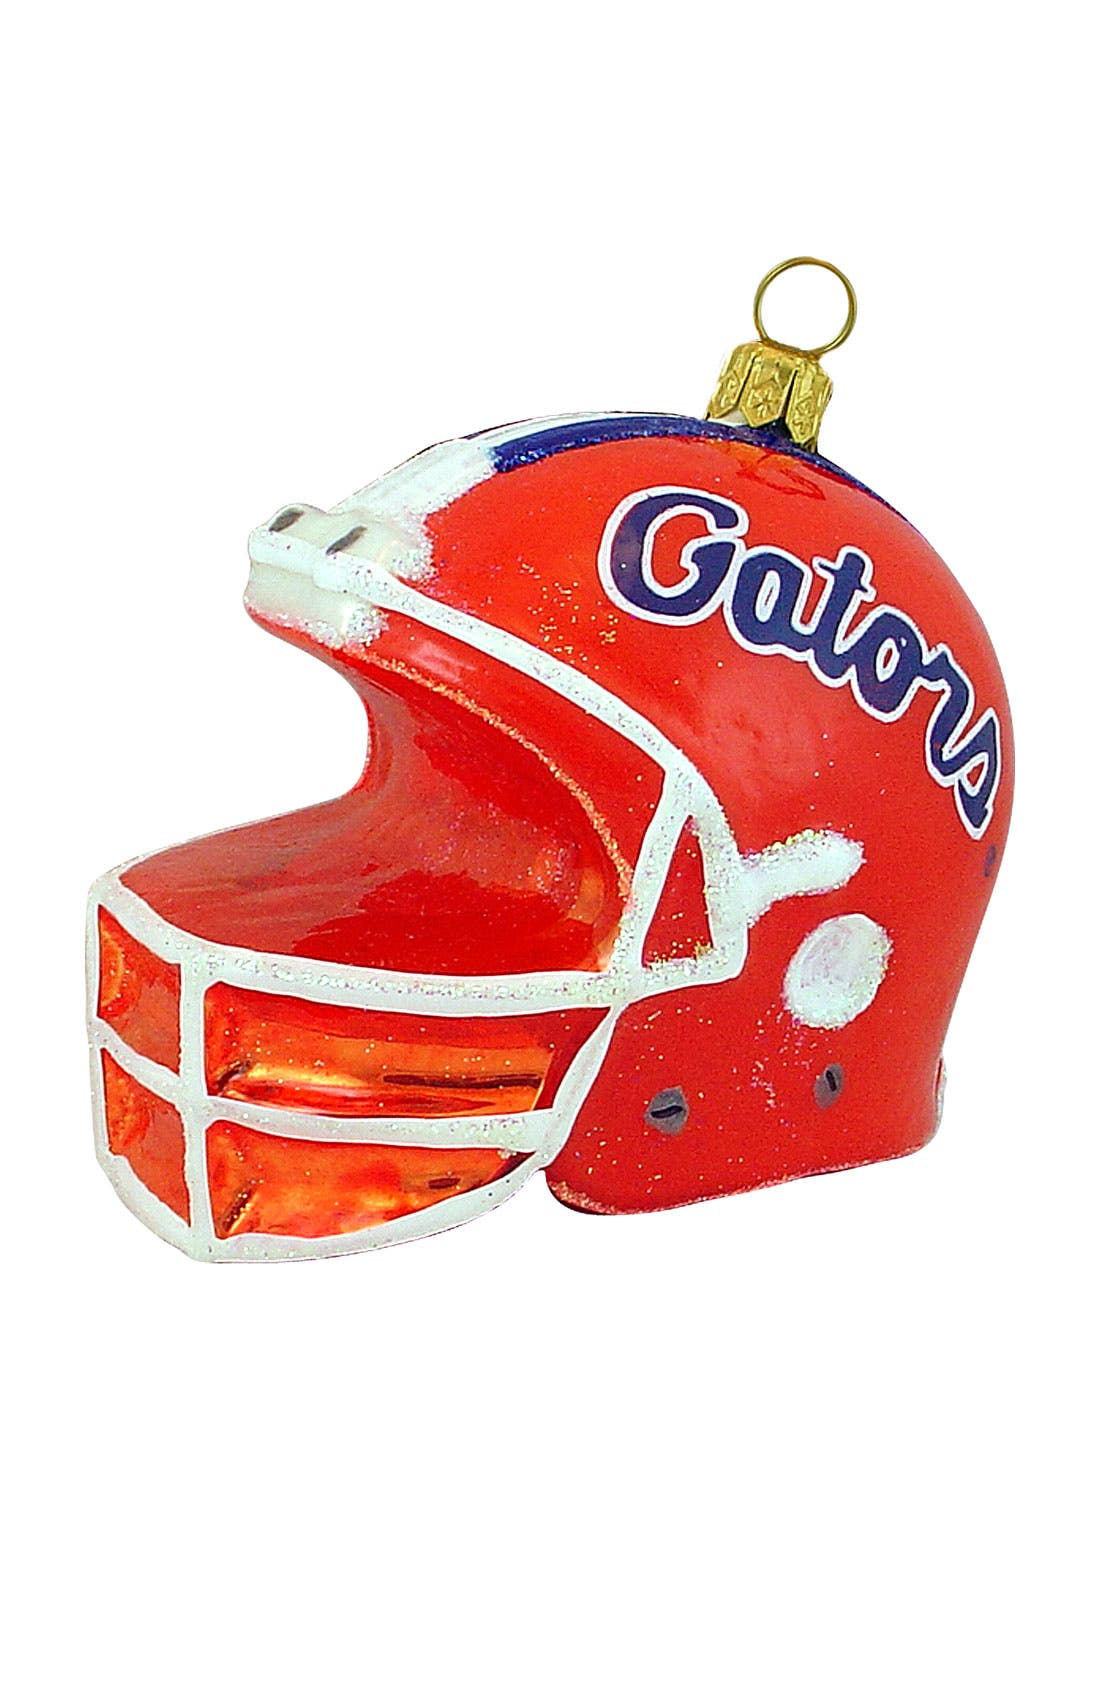 Alternate Image 1 Selected - Joy to the World Collectibles 'Collegiate Football Helmet' Ornament